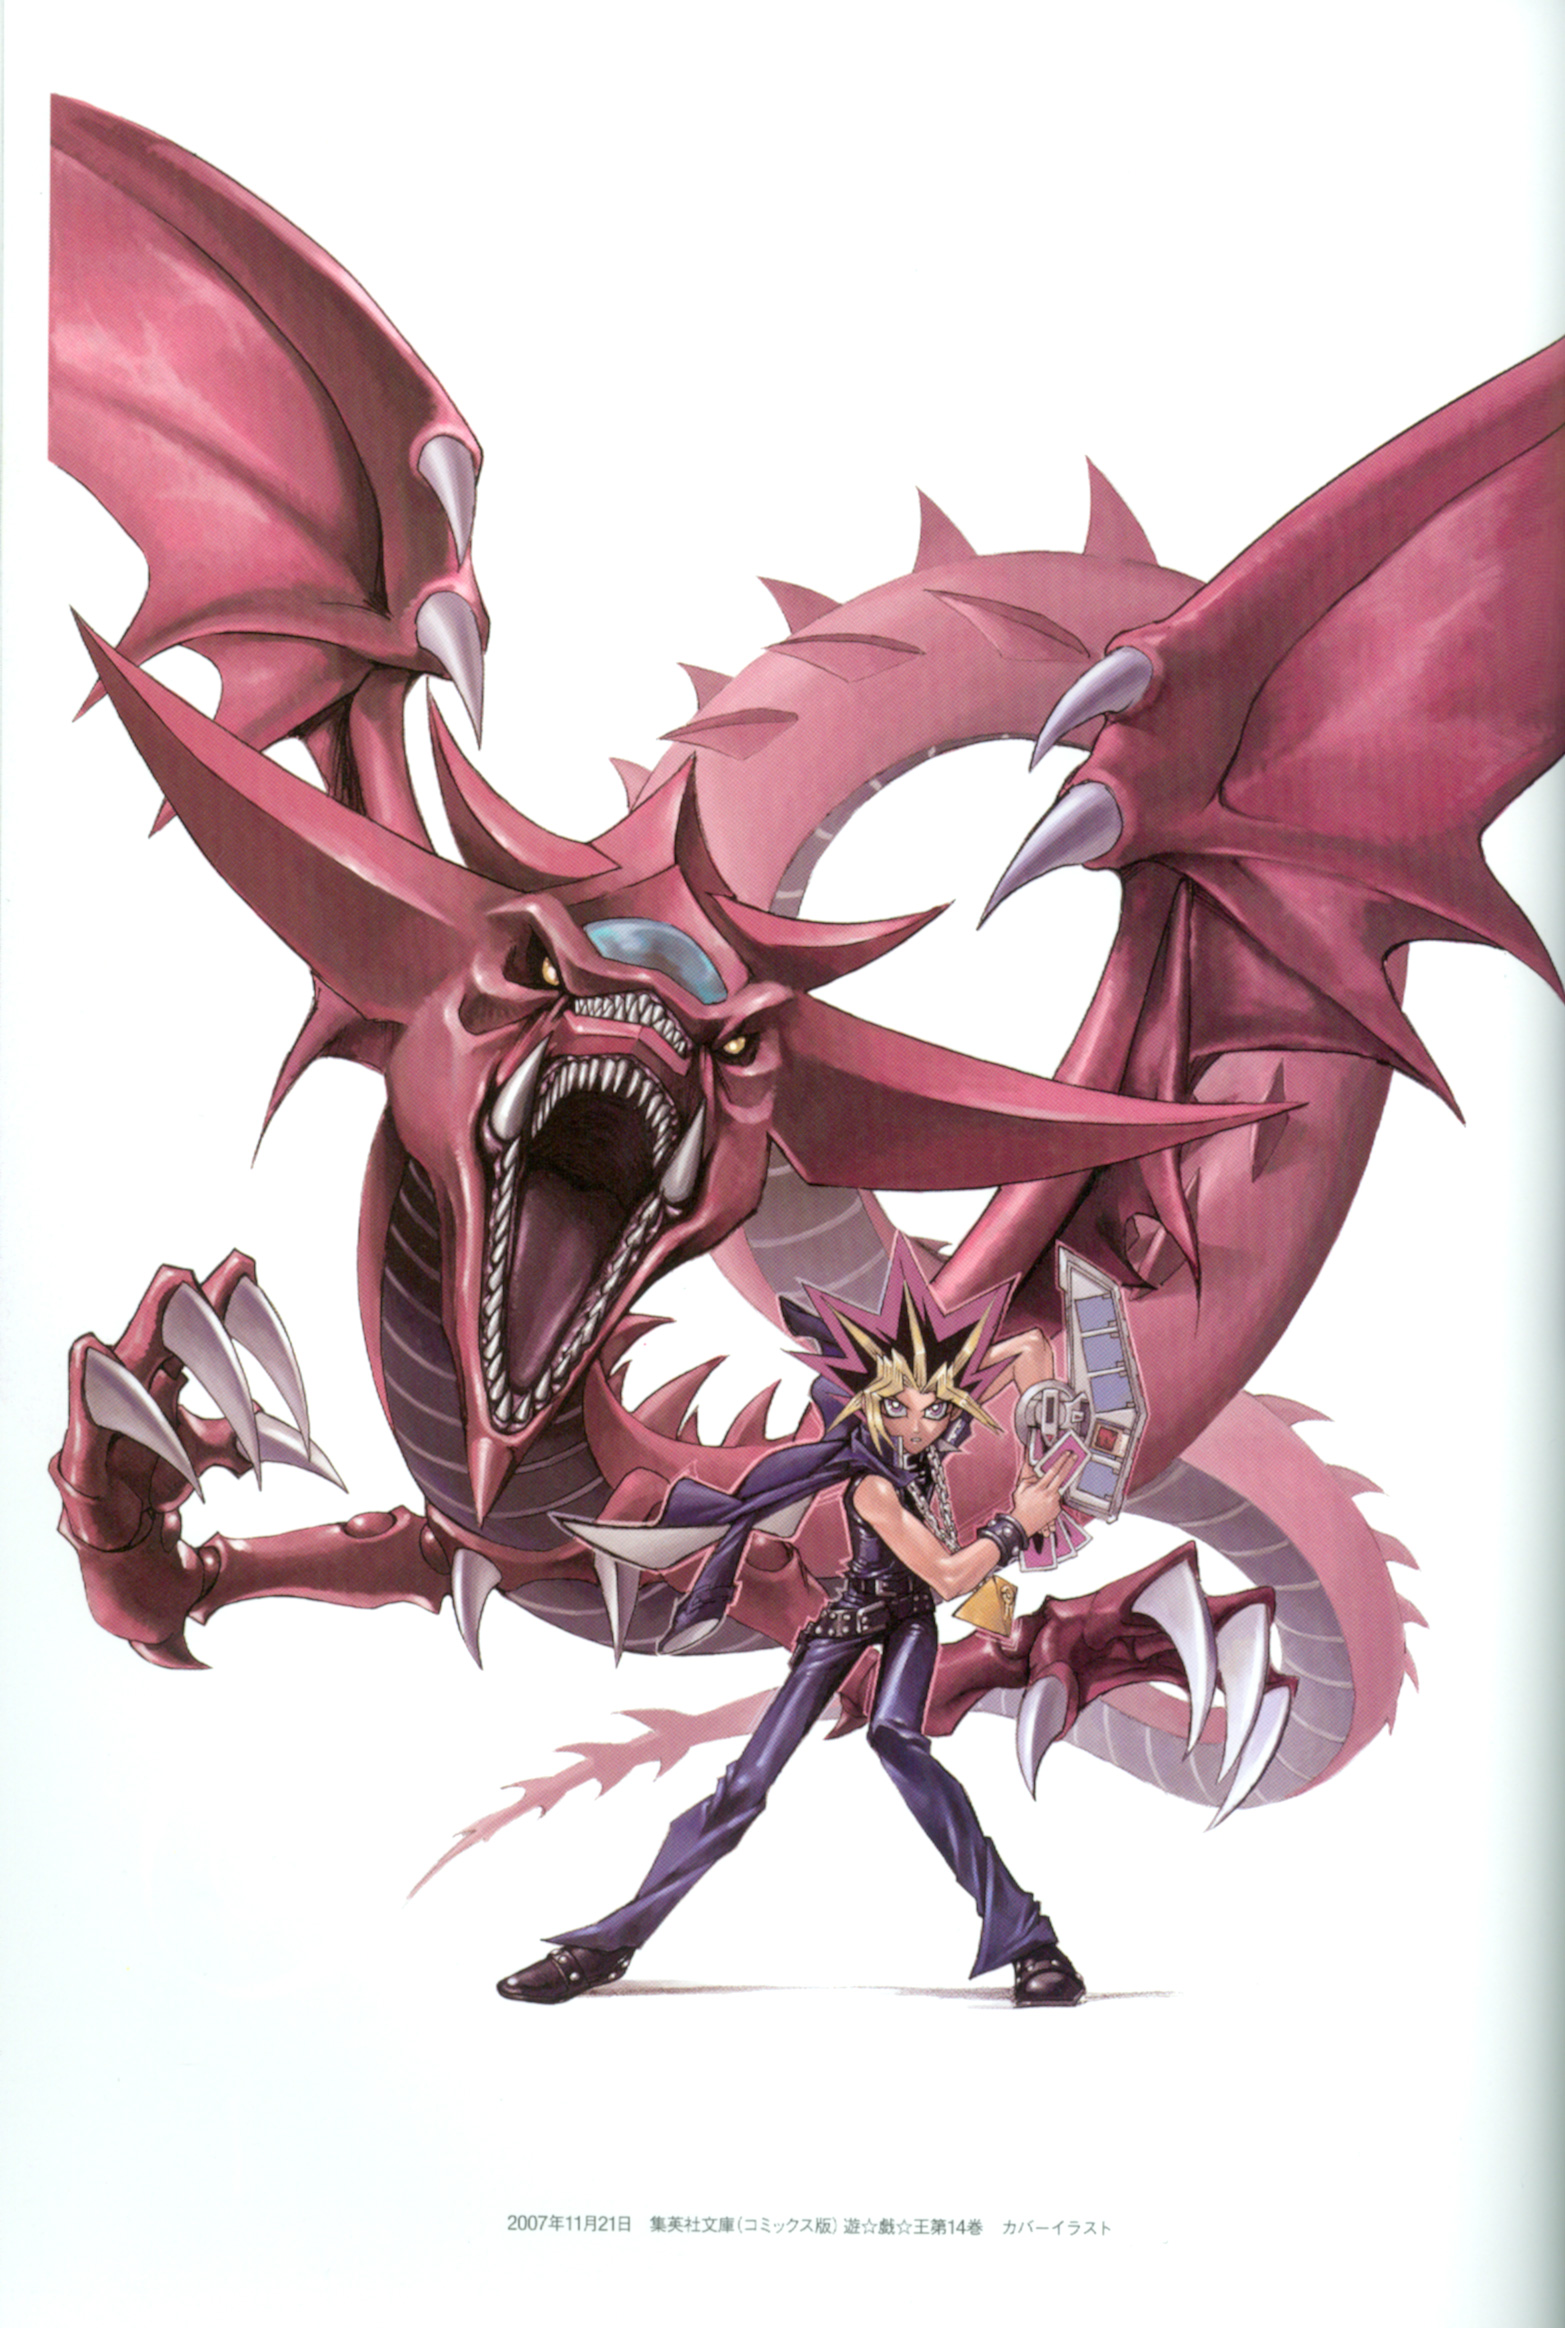 Slifer The Sky Dragon Wallpaper And Scan Gallery Minitokyo